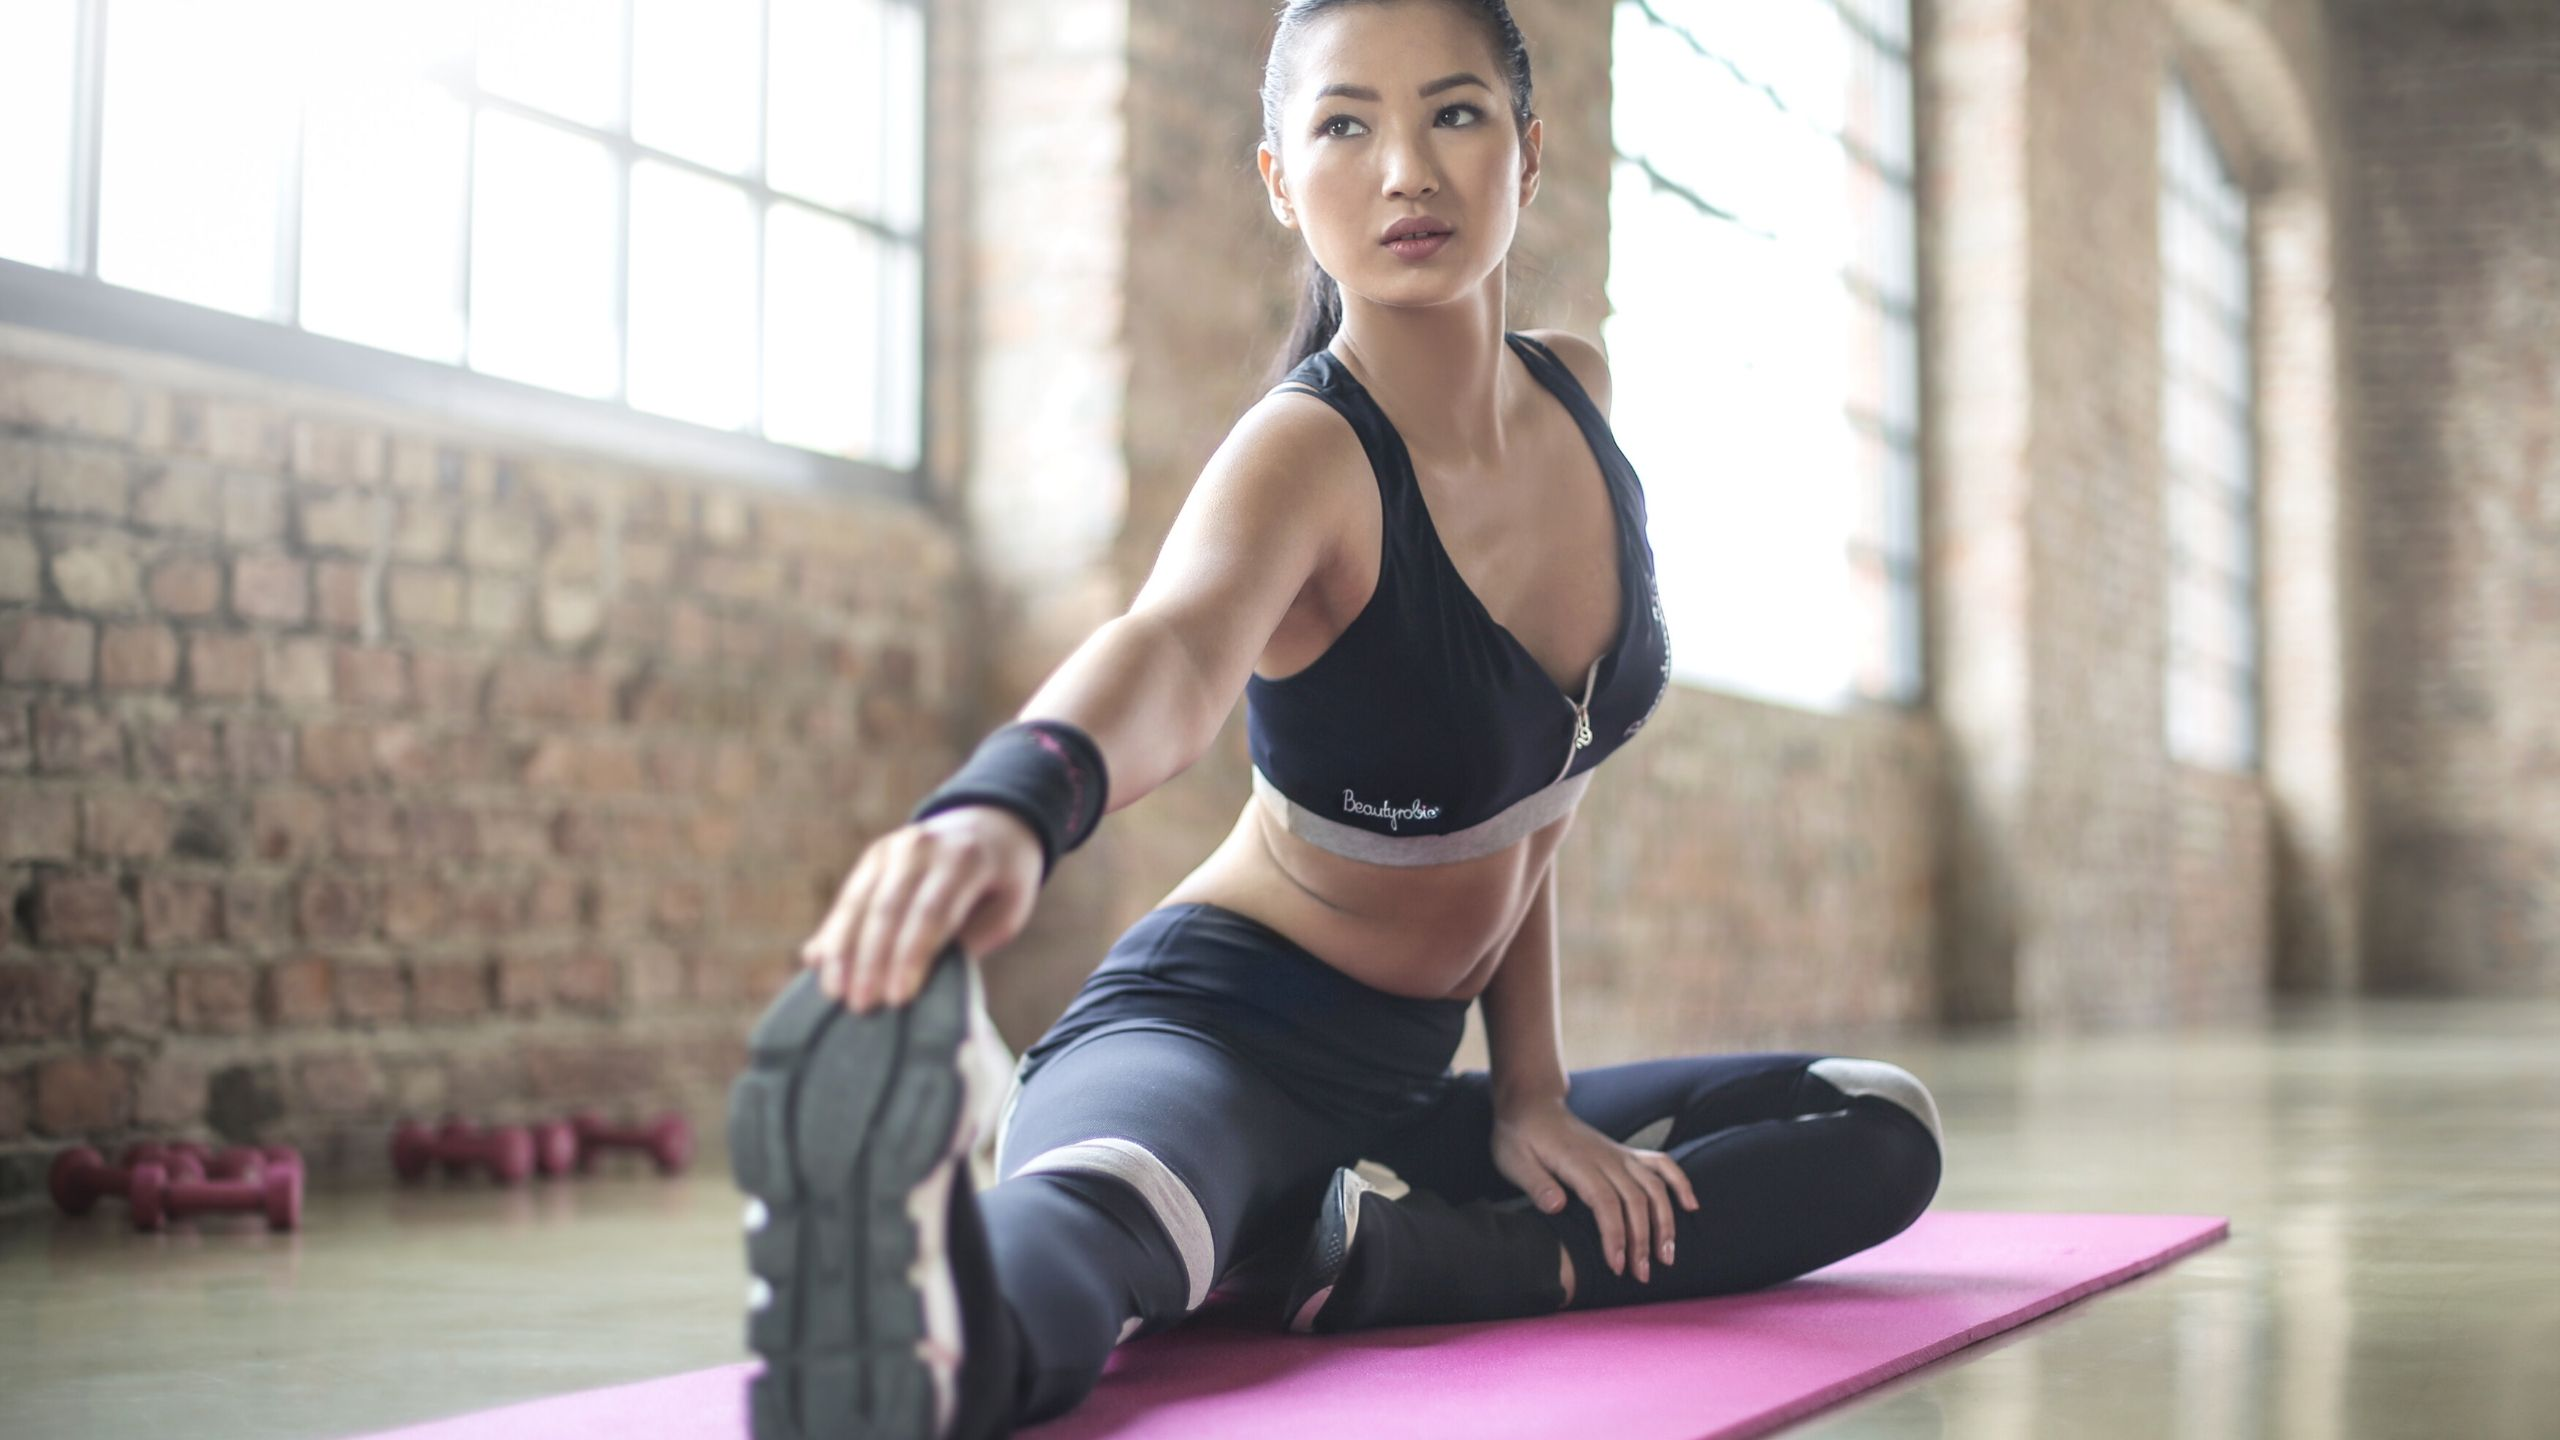 Read more about the article Simple Exercises to Lose Weight in 3 Weeks